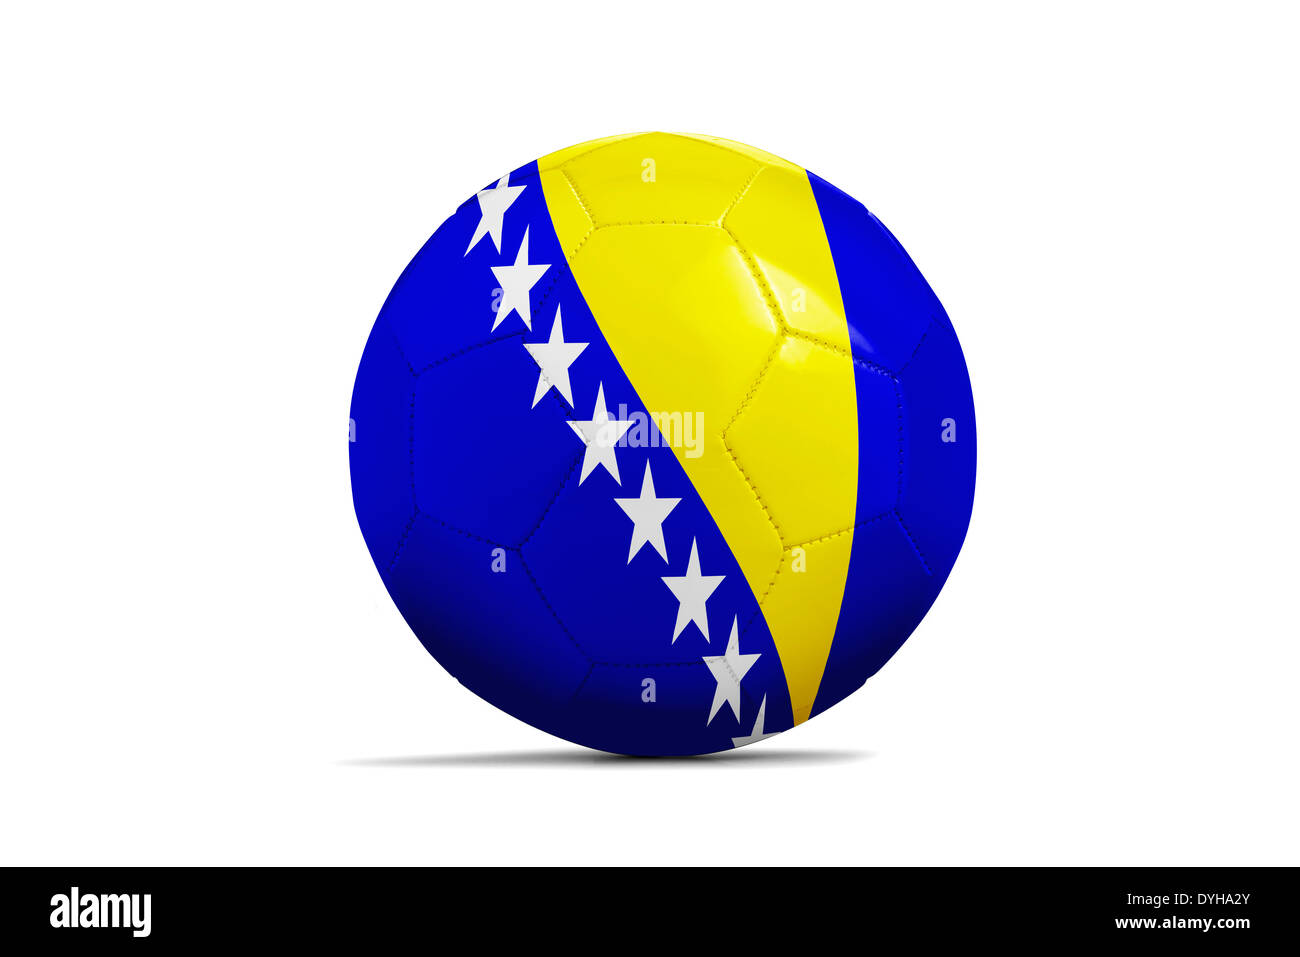 Soccer balls with teams flags, Football Brazil 2014. Group F, Bosnia and Herzegovina - Stock Image